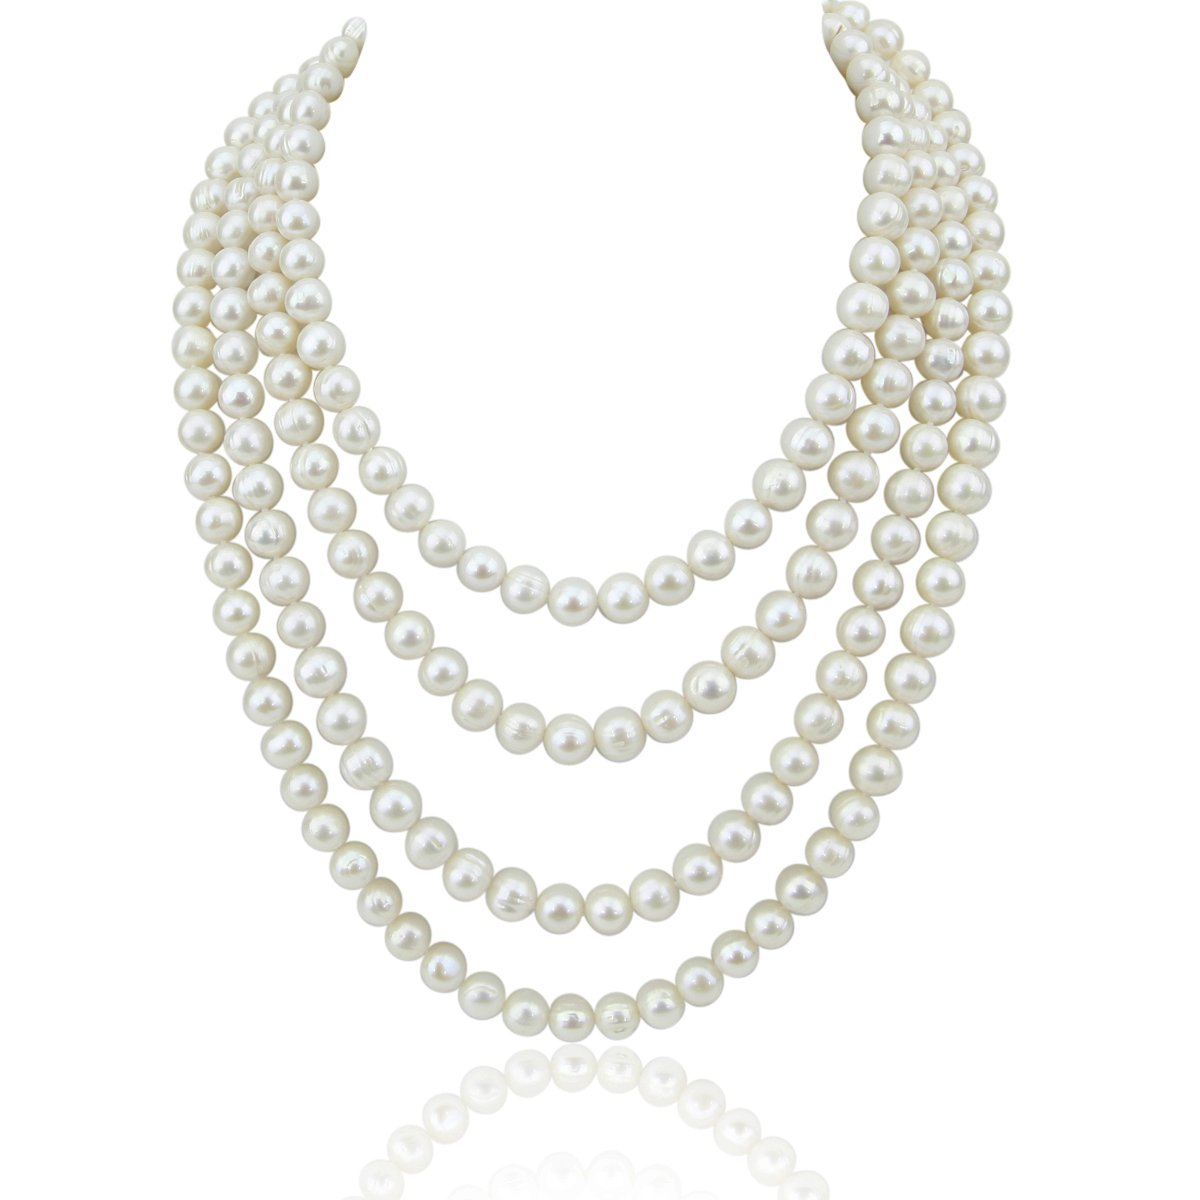 82 Handpicked 8.5-9.5 mm Lustrous White Circl?Baroque Freshwater Cultured Pearl Endless Necklace